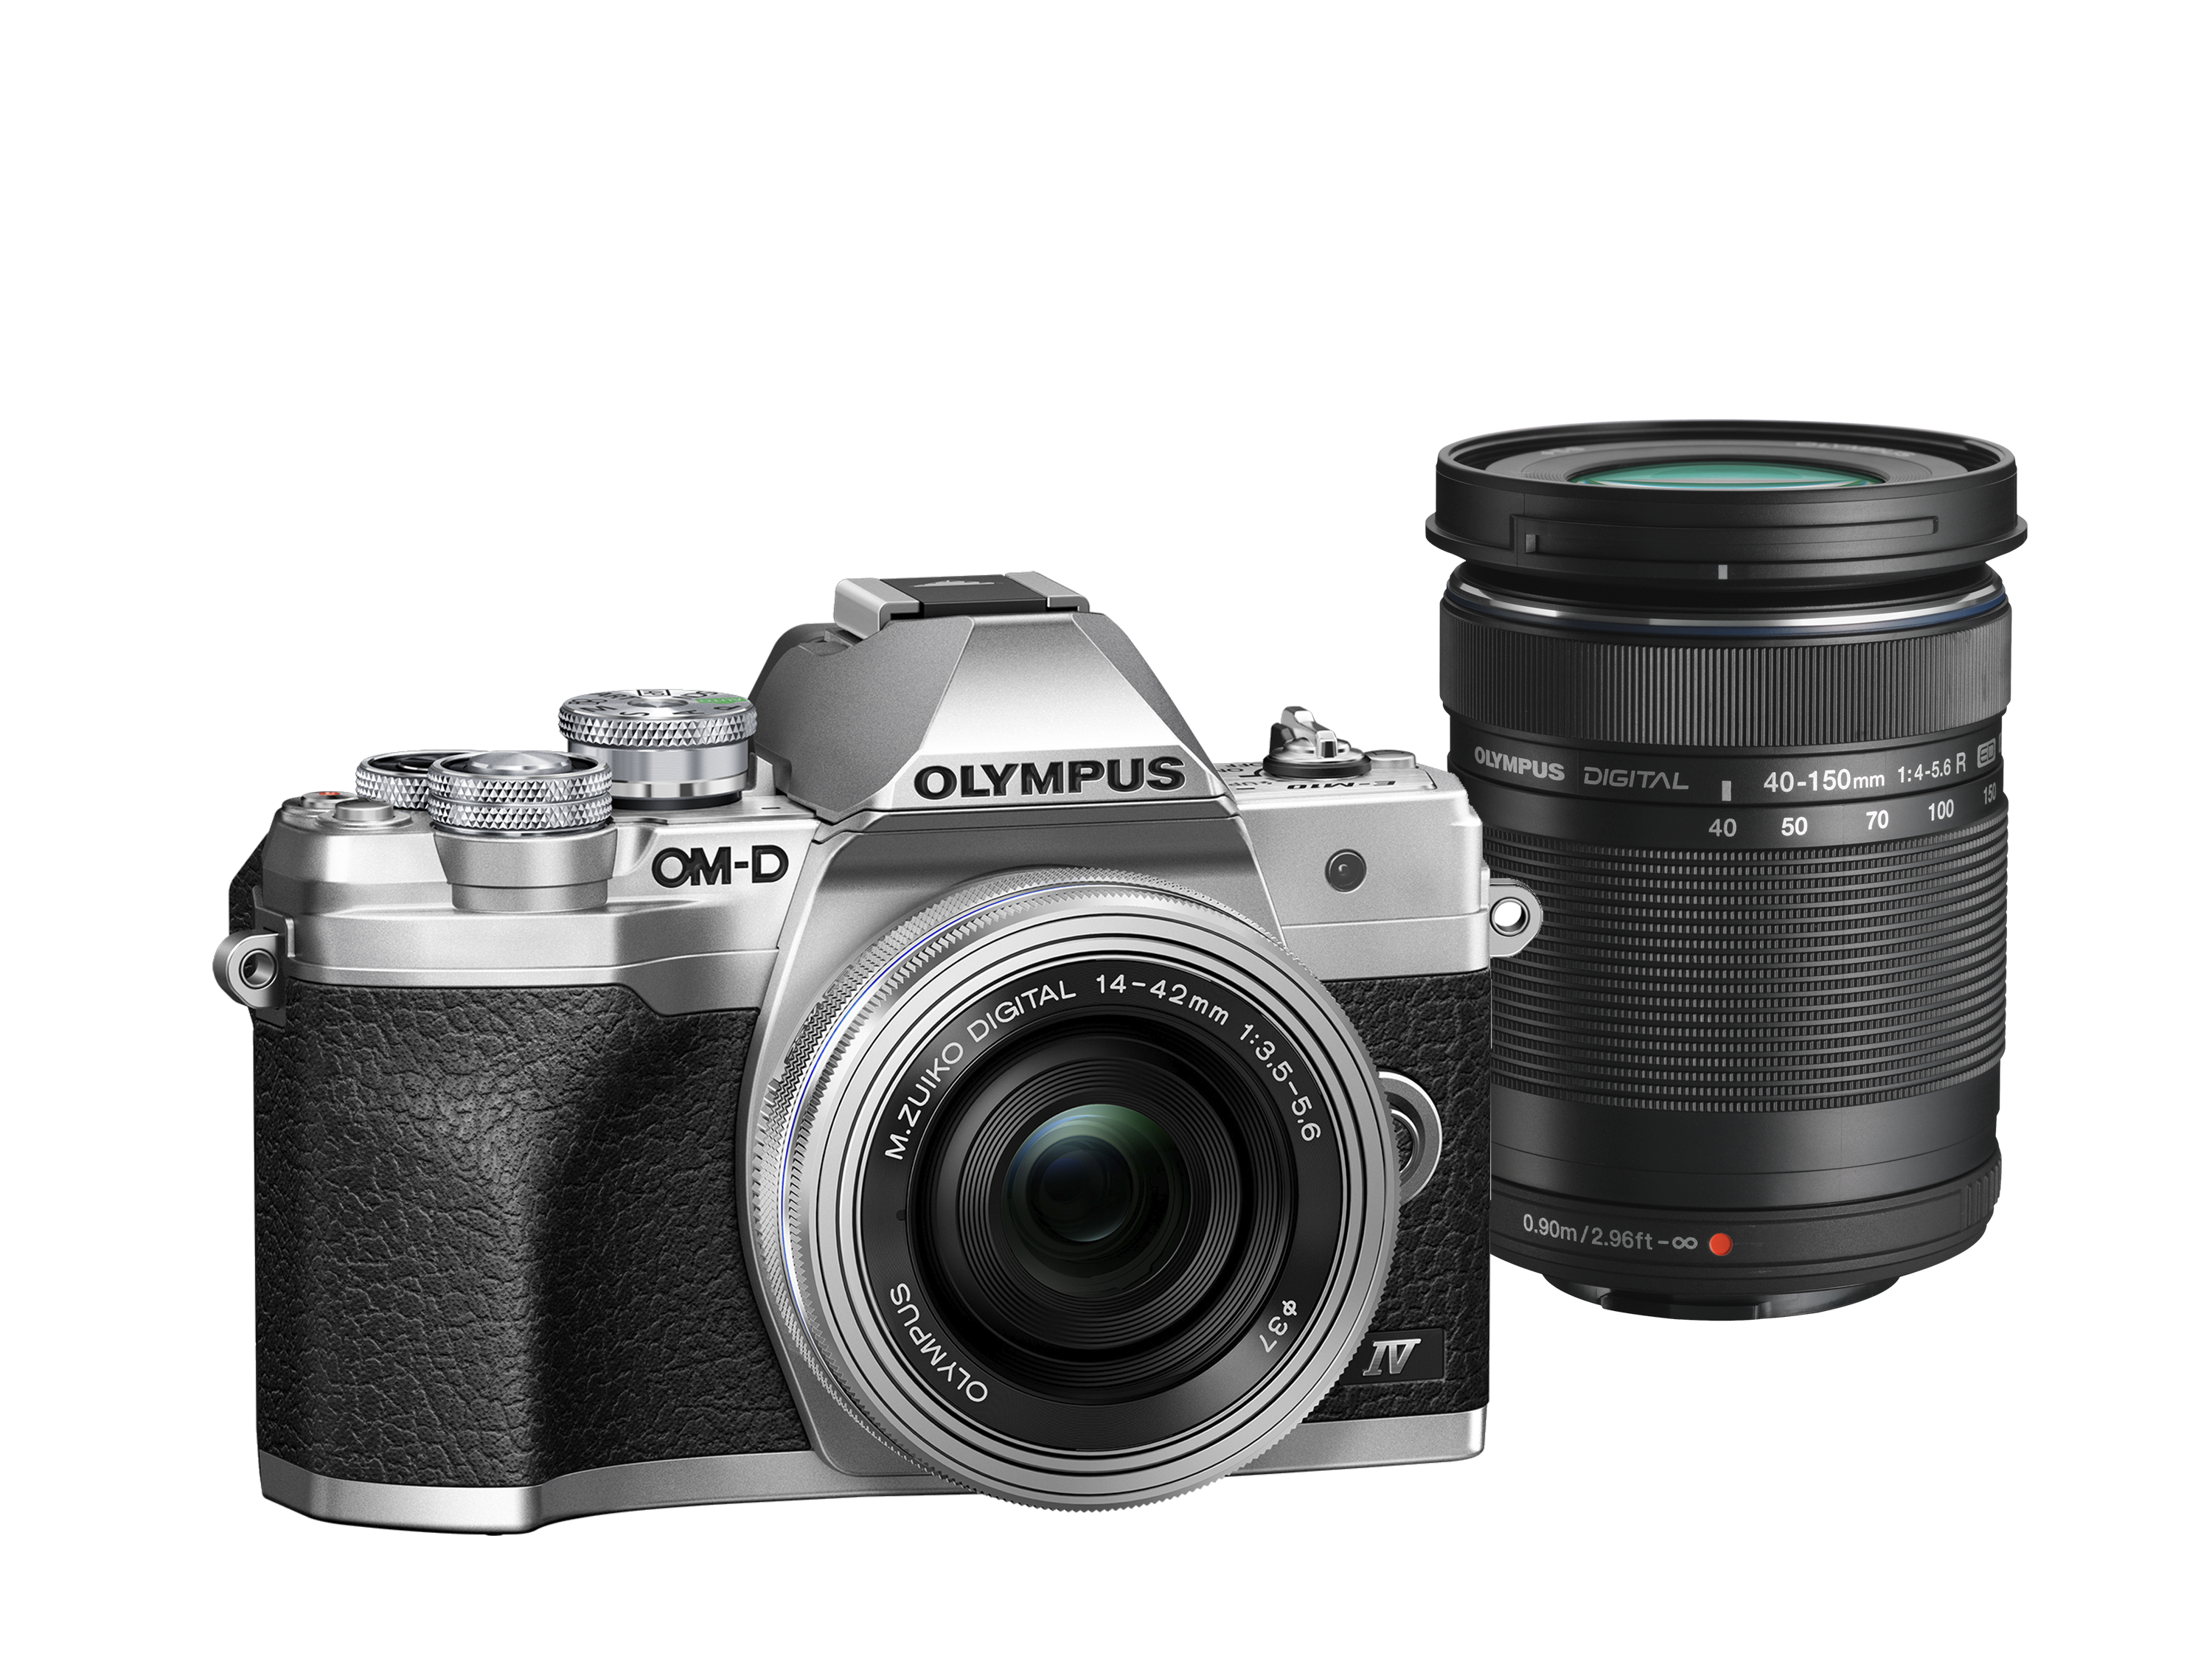 Фотоаппарат Olympus OM-D E-M10 Mark IV Pancake Double Zoom Kit с объективами 14-42 EZ и 40-150mm серебристый (V207134SE000) фото